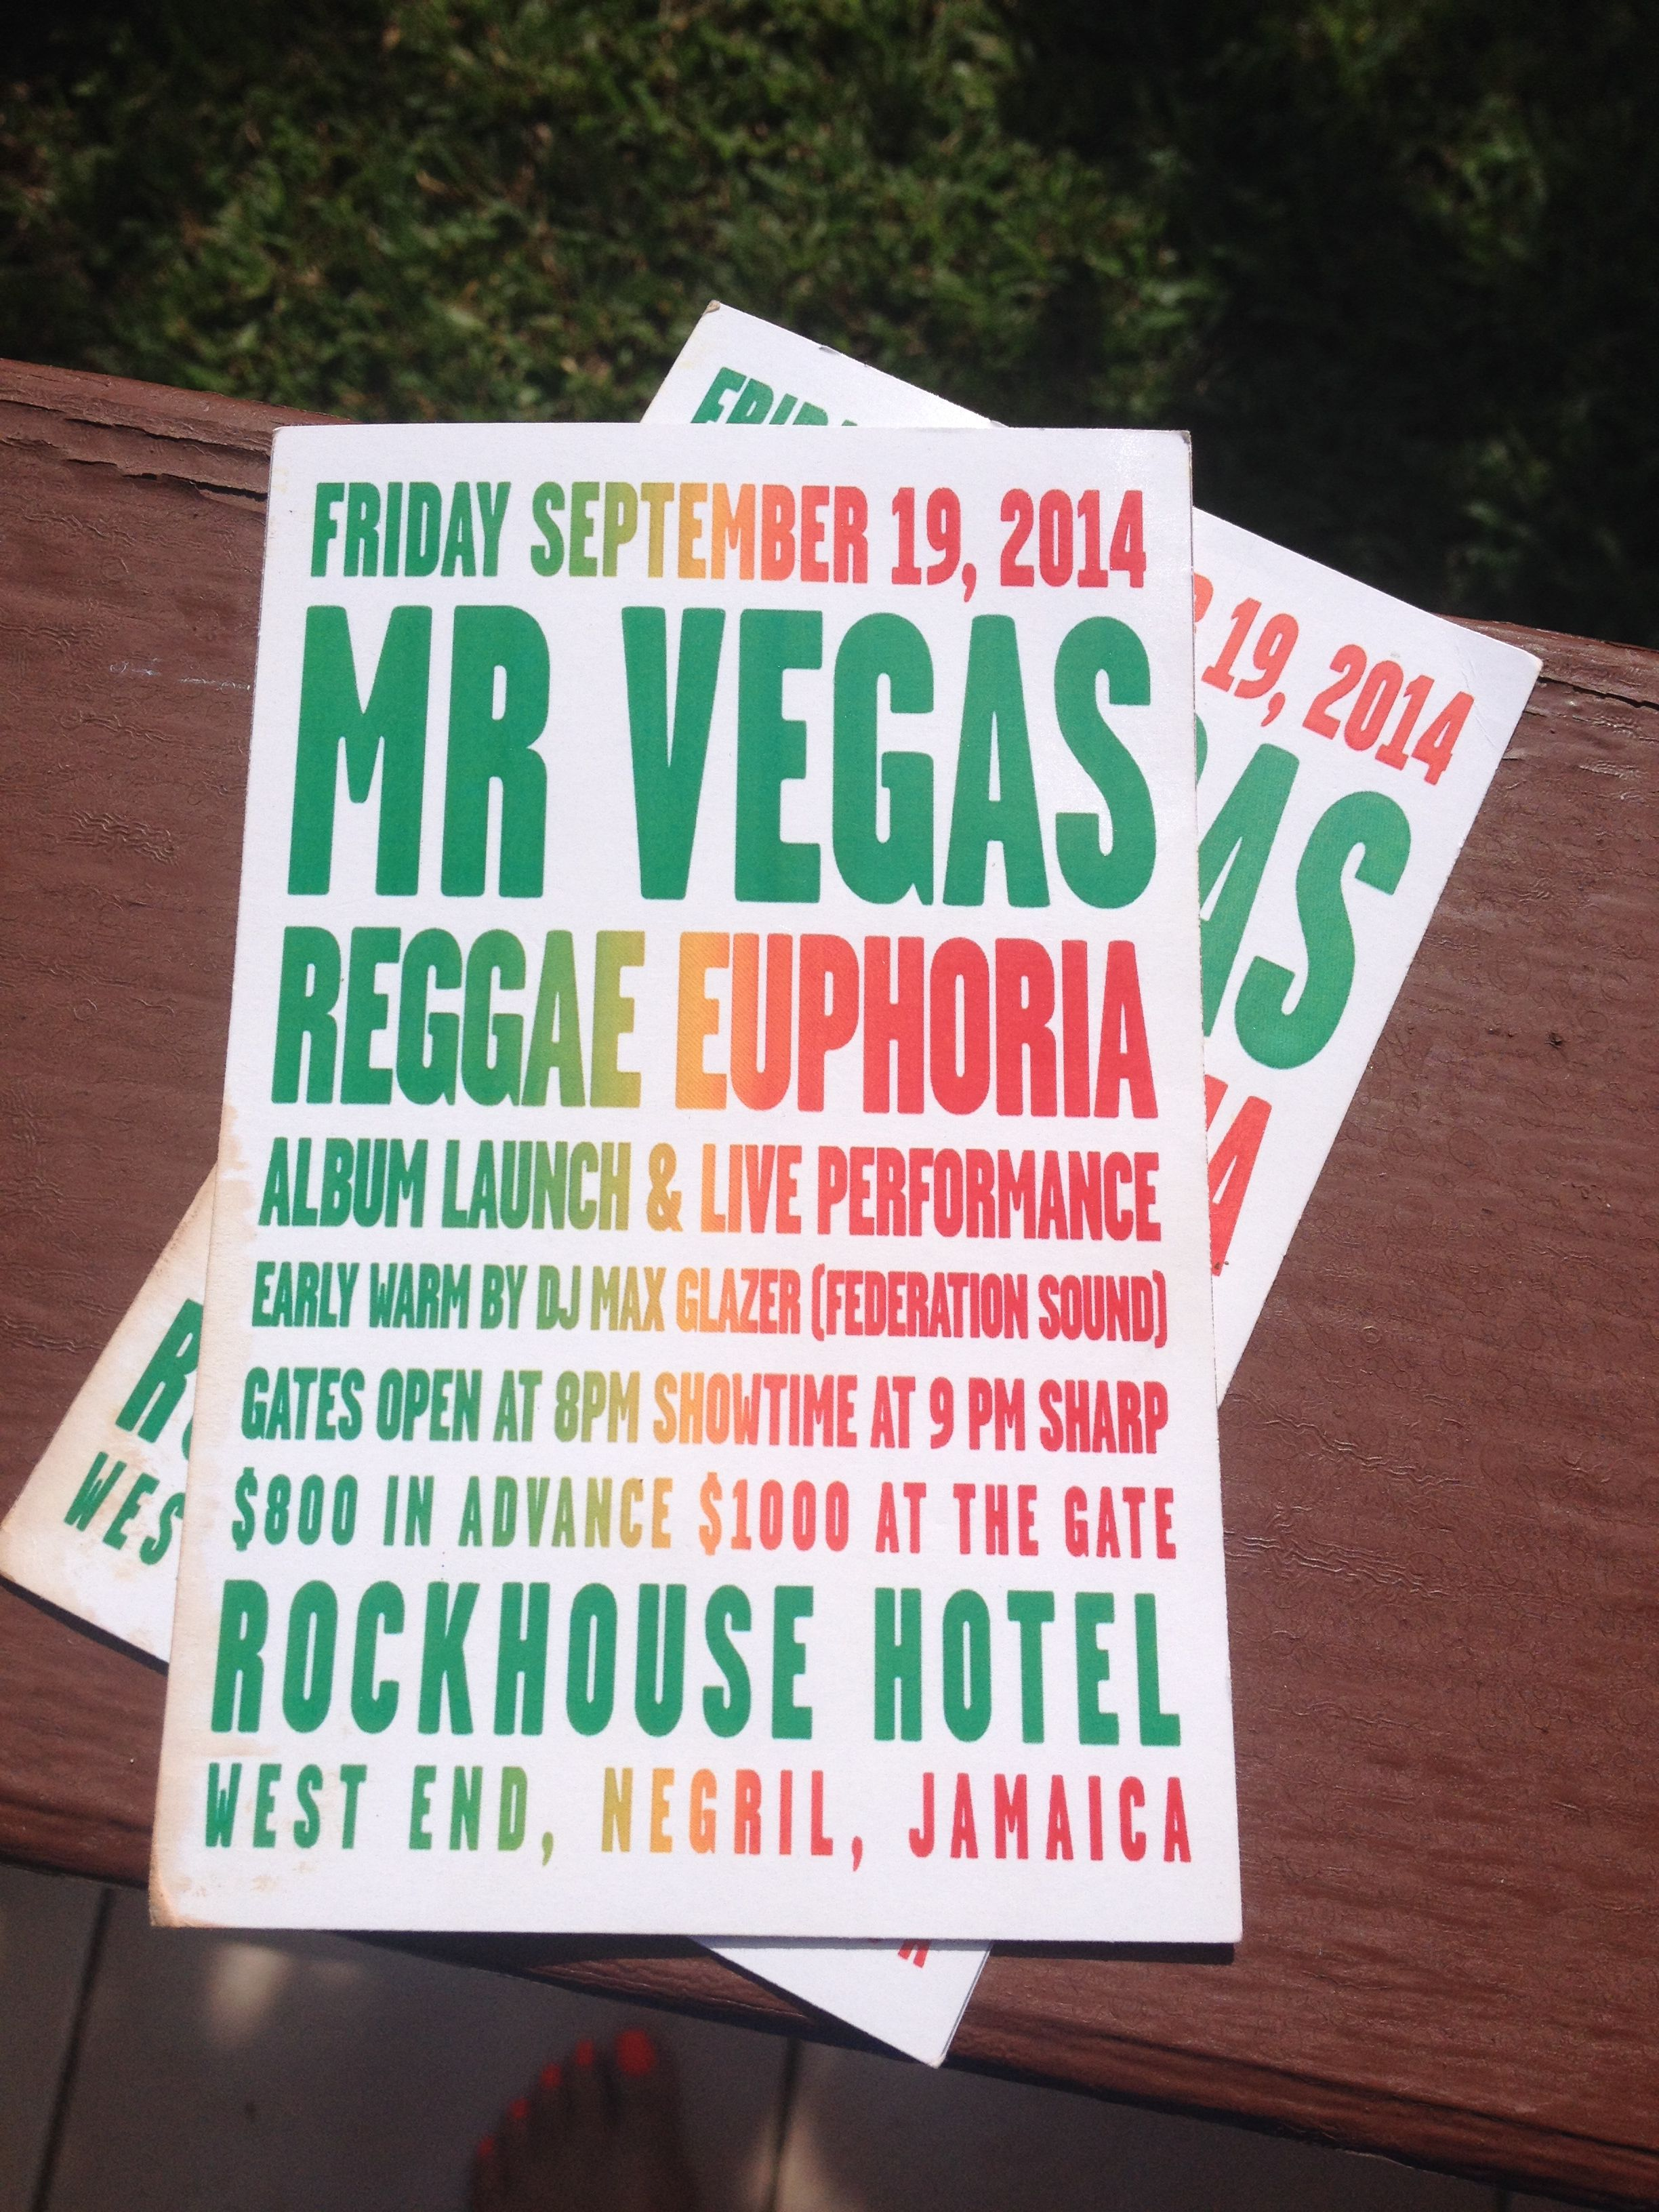 Rockhouse Hotel Negril Jamaica.....me and my baby the best concert venue ever....lovin Mr. Vegas